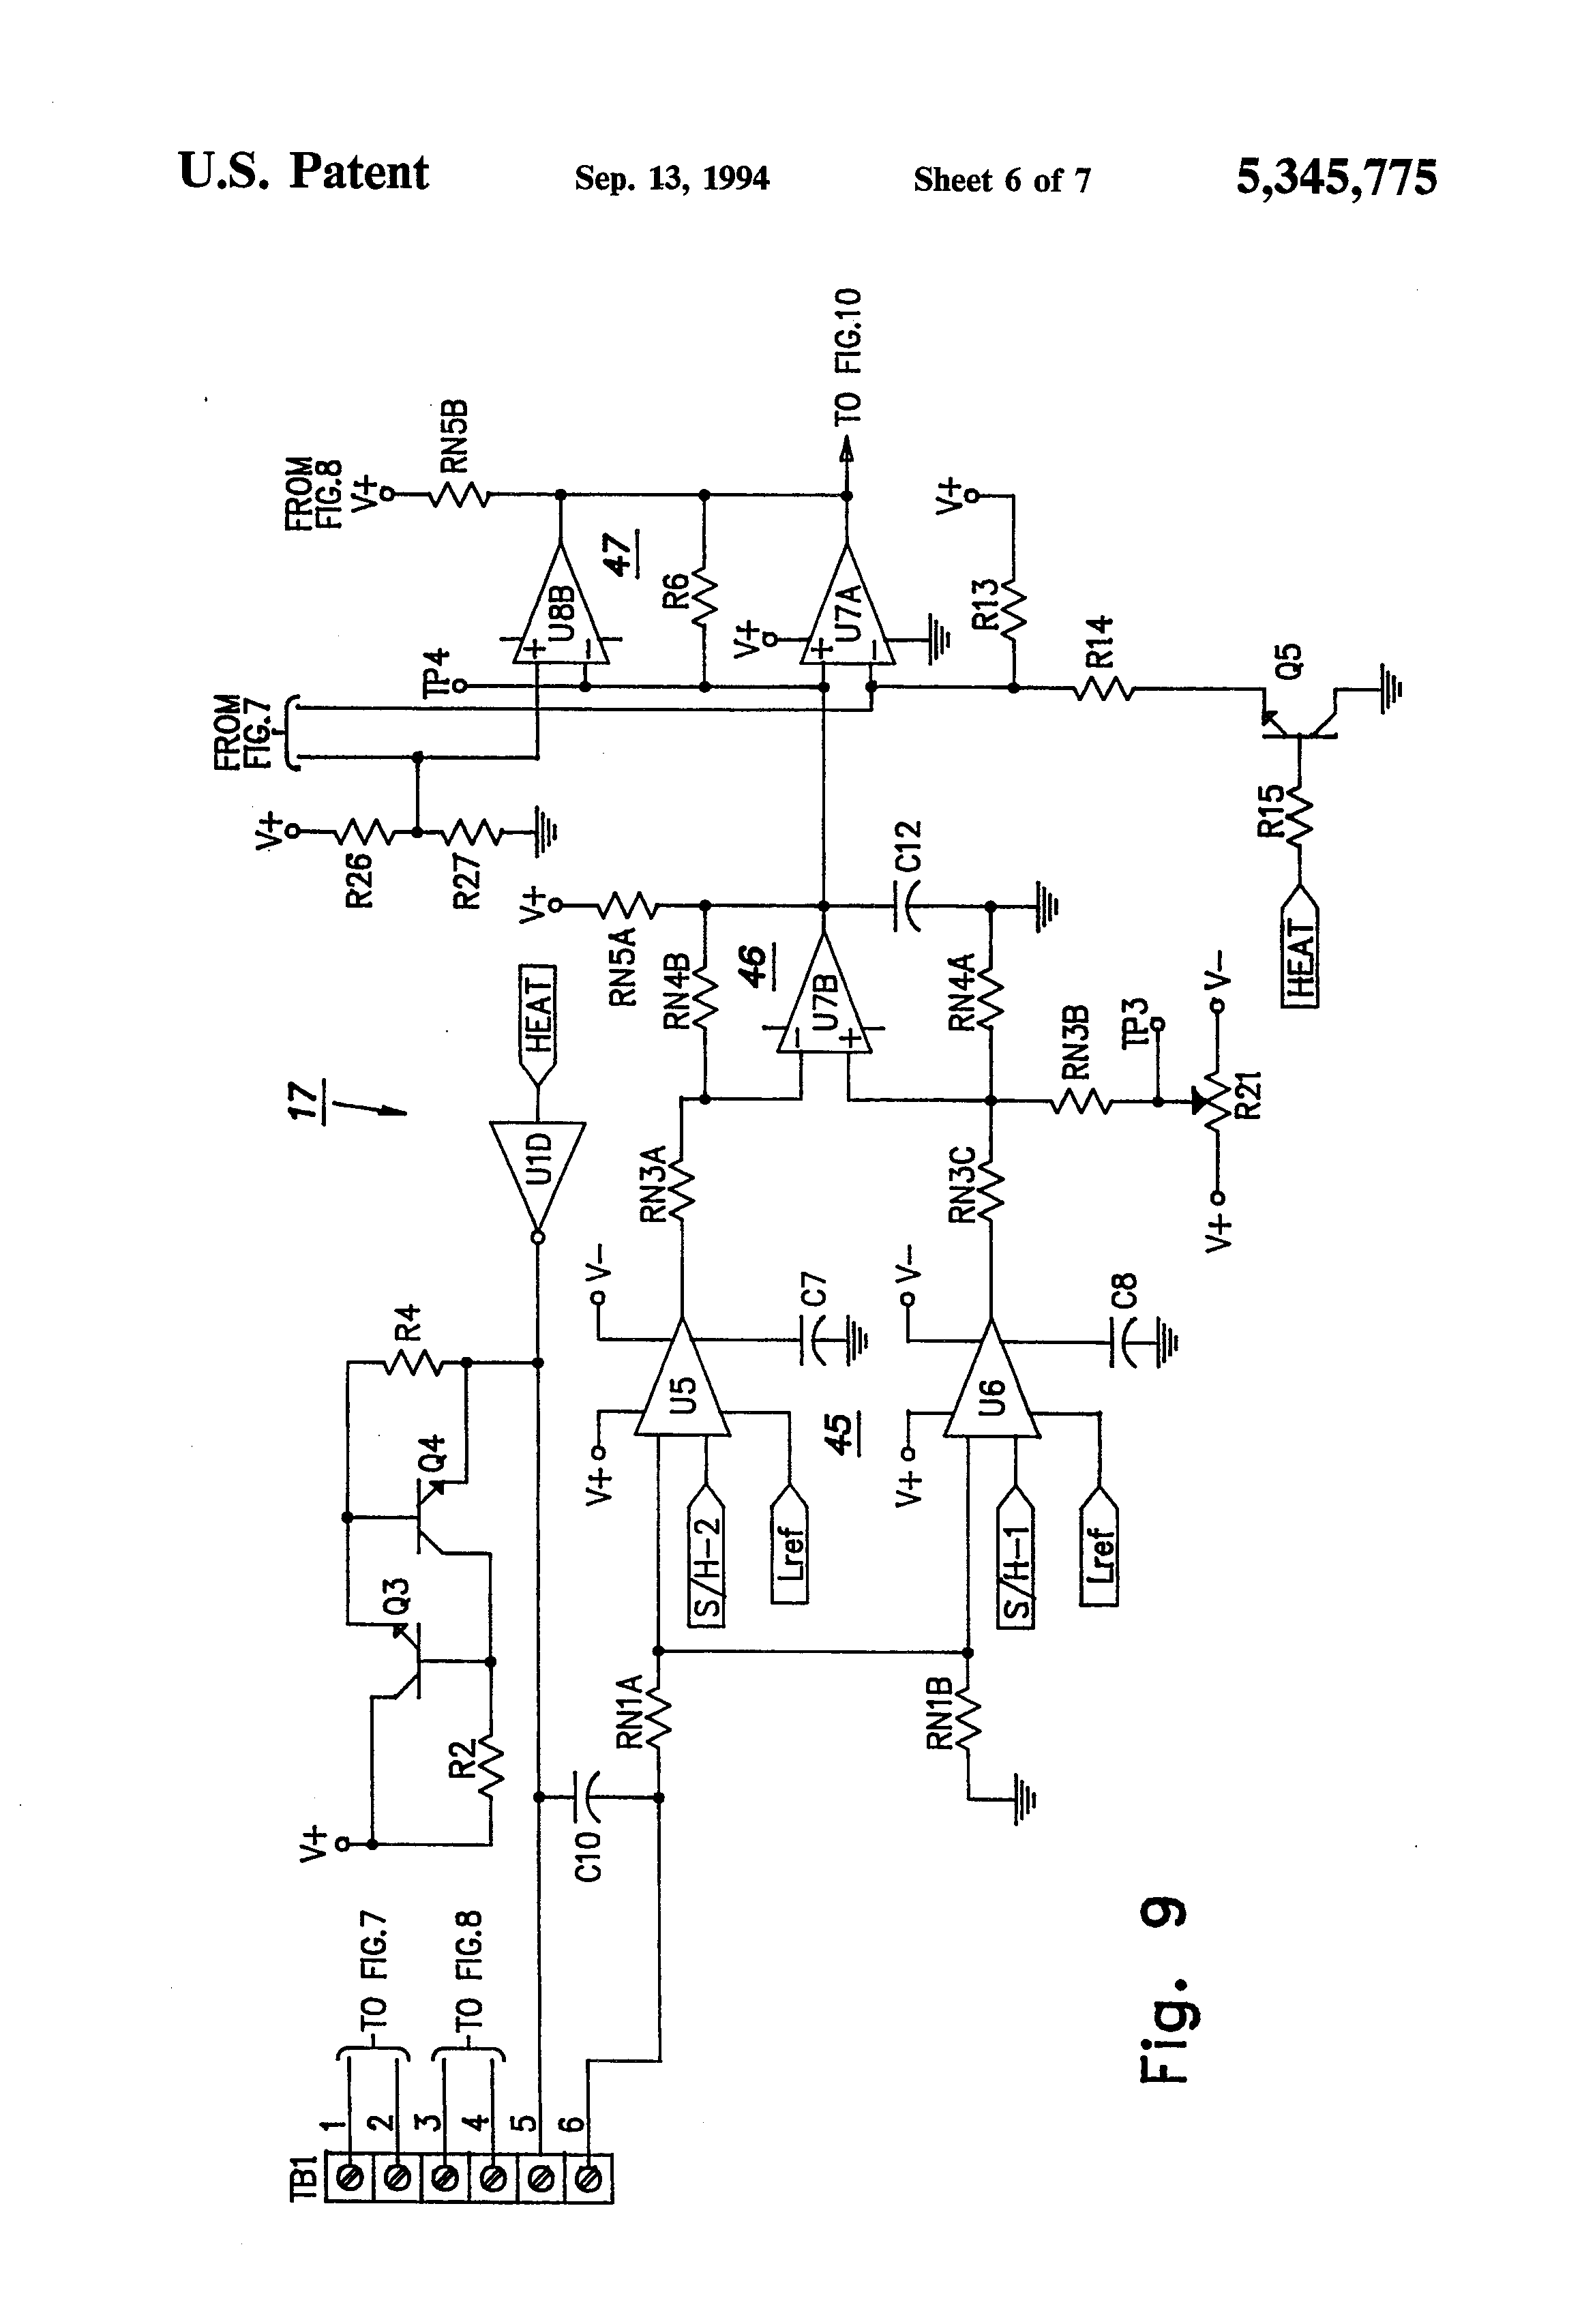 Russell Evaporator Wiring Diagram 33 Images Of Refrigeration System Us5345775 6 Patent Detection Assembly At